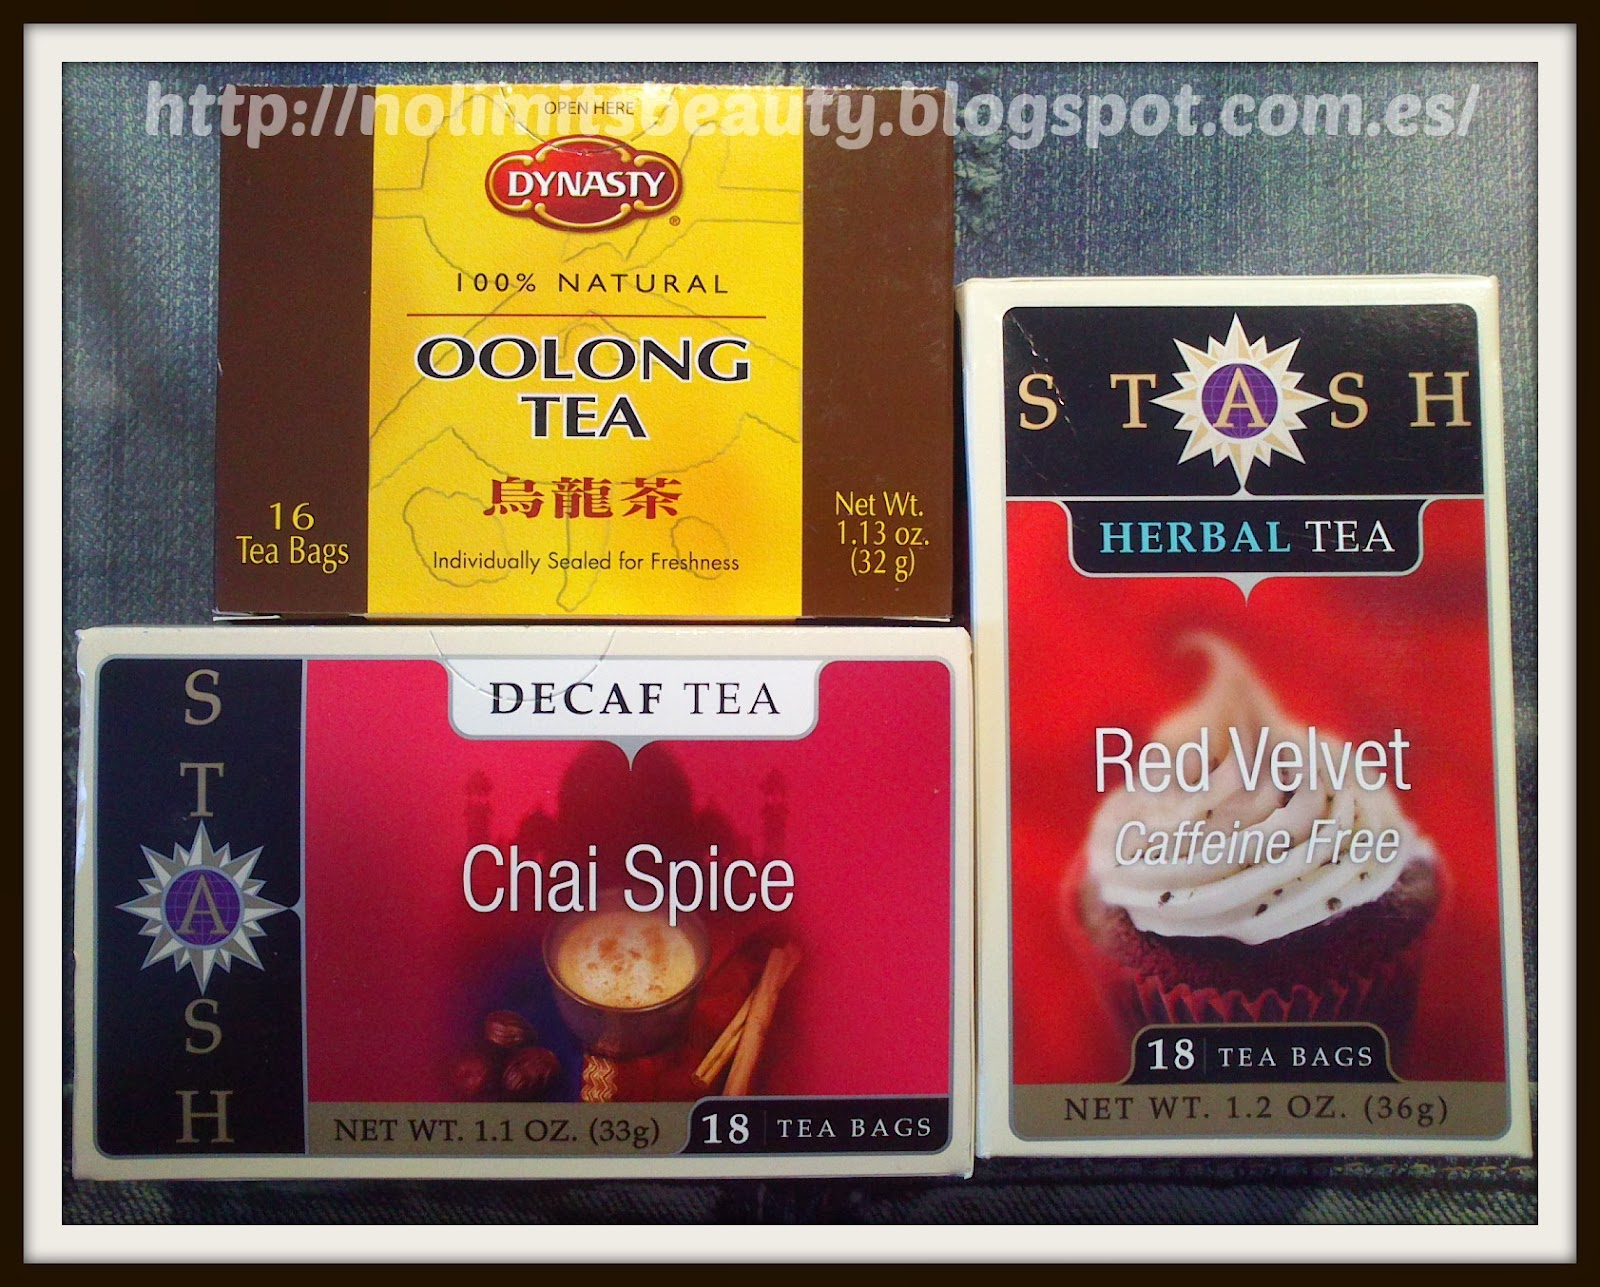 iHerb - Oolong Tea de DYNASTY - Chai Spice Decaf Tea y Red Velvet Tea de STASH